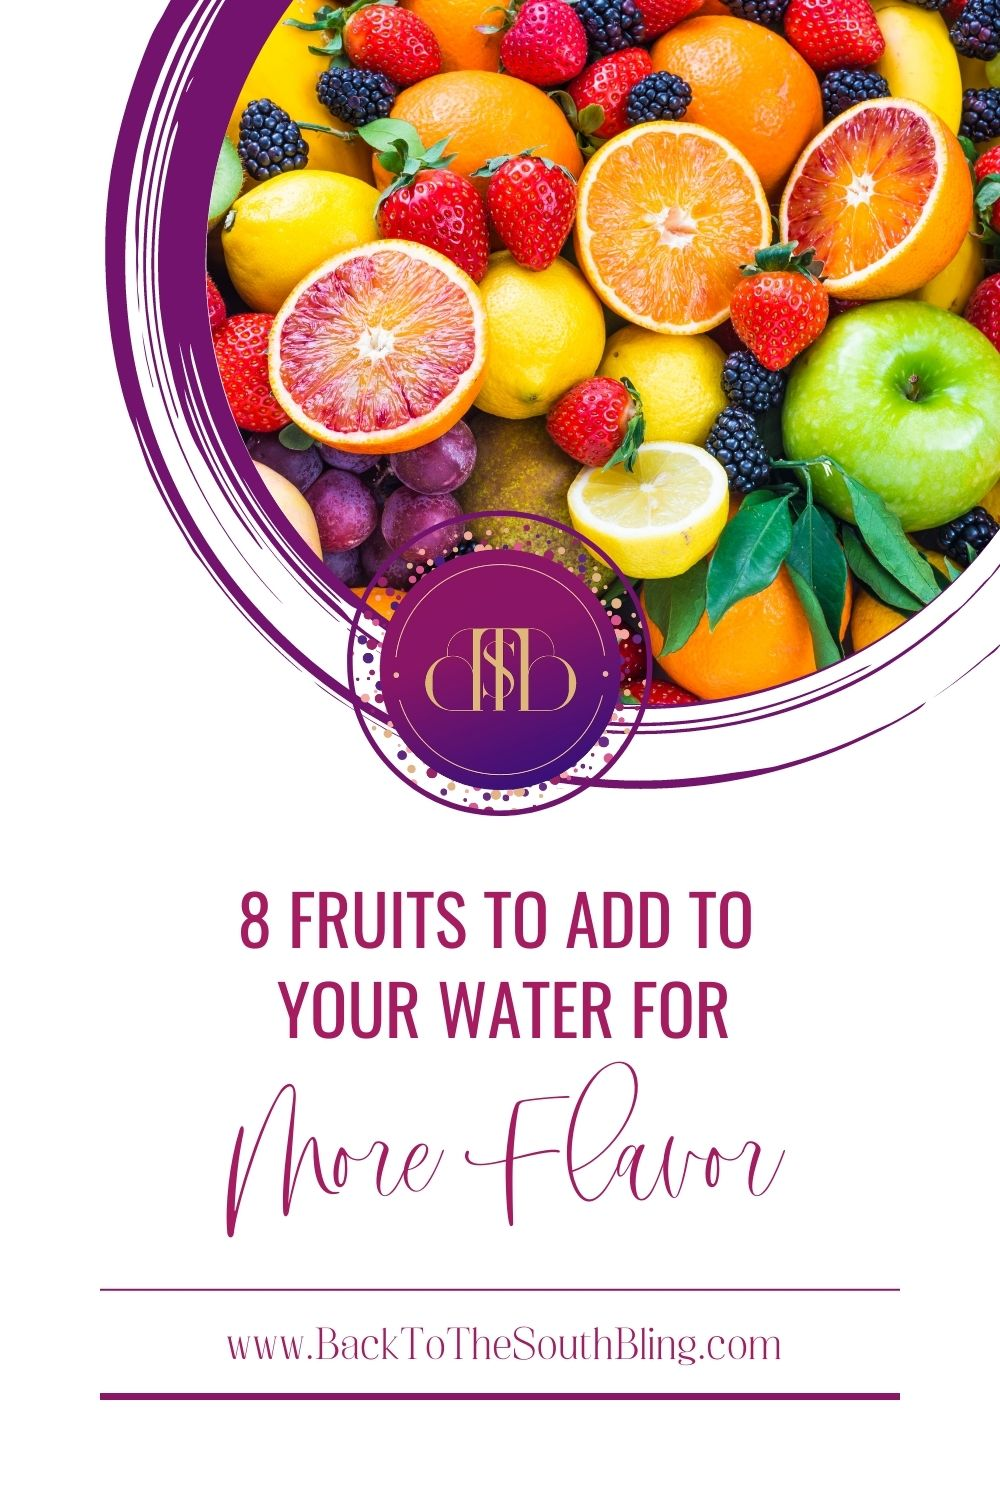 Fruits to add to water